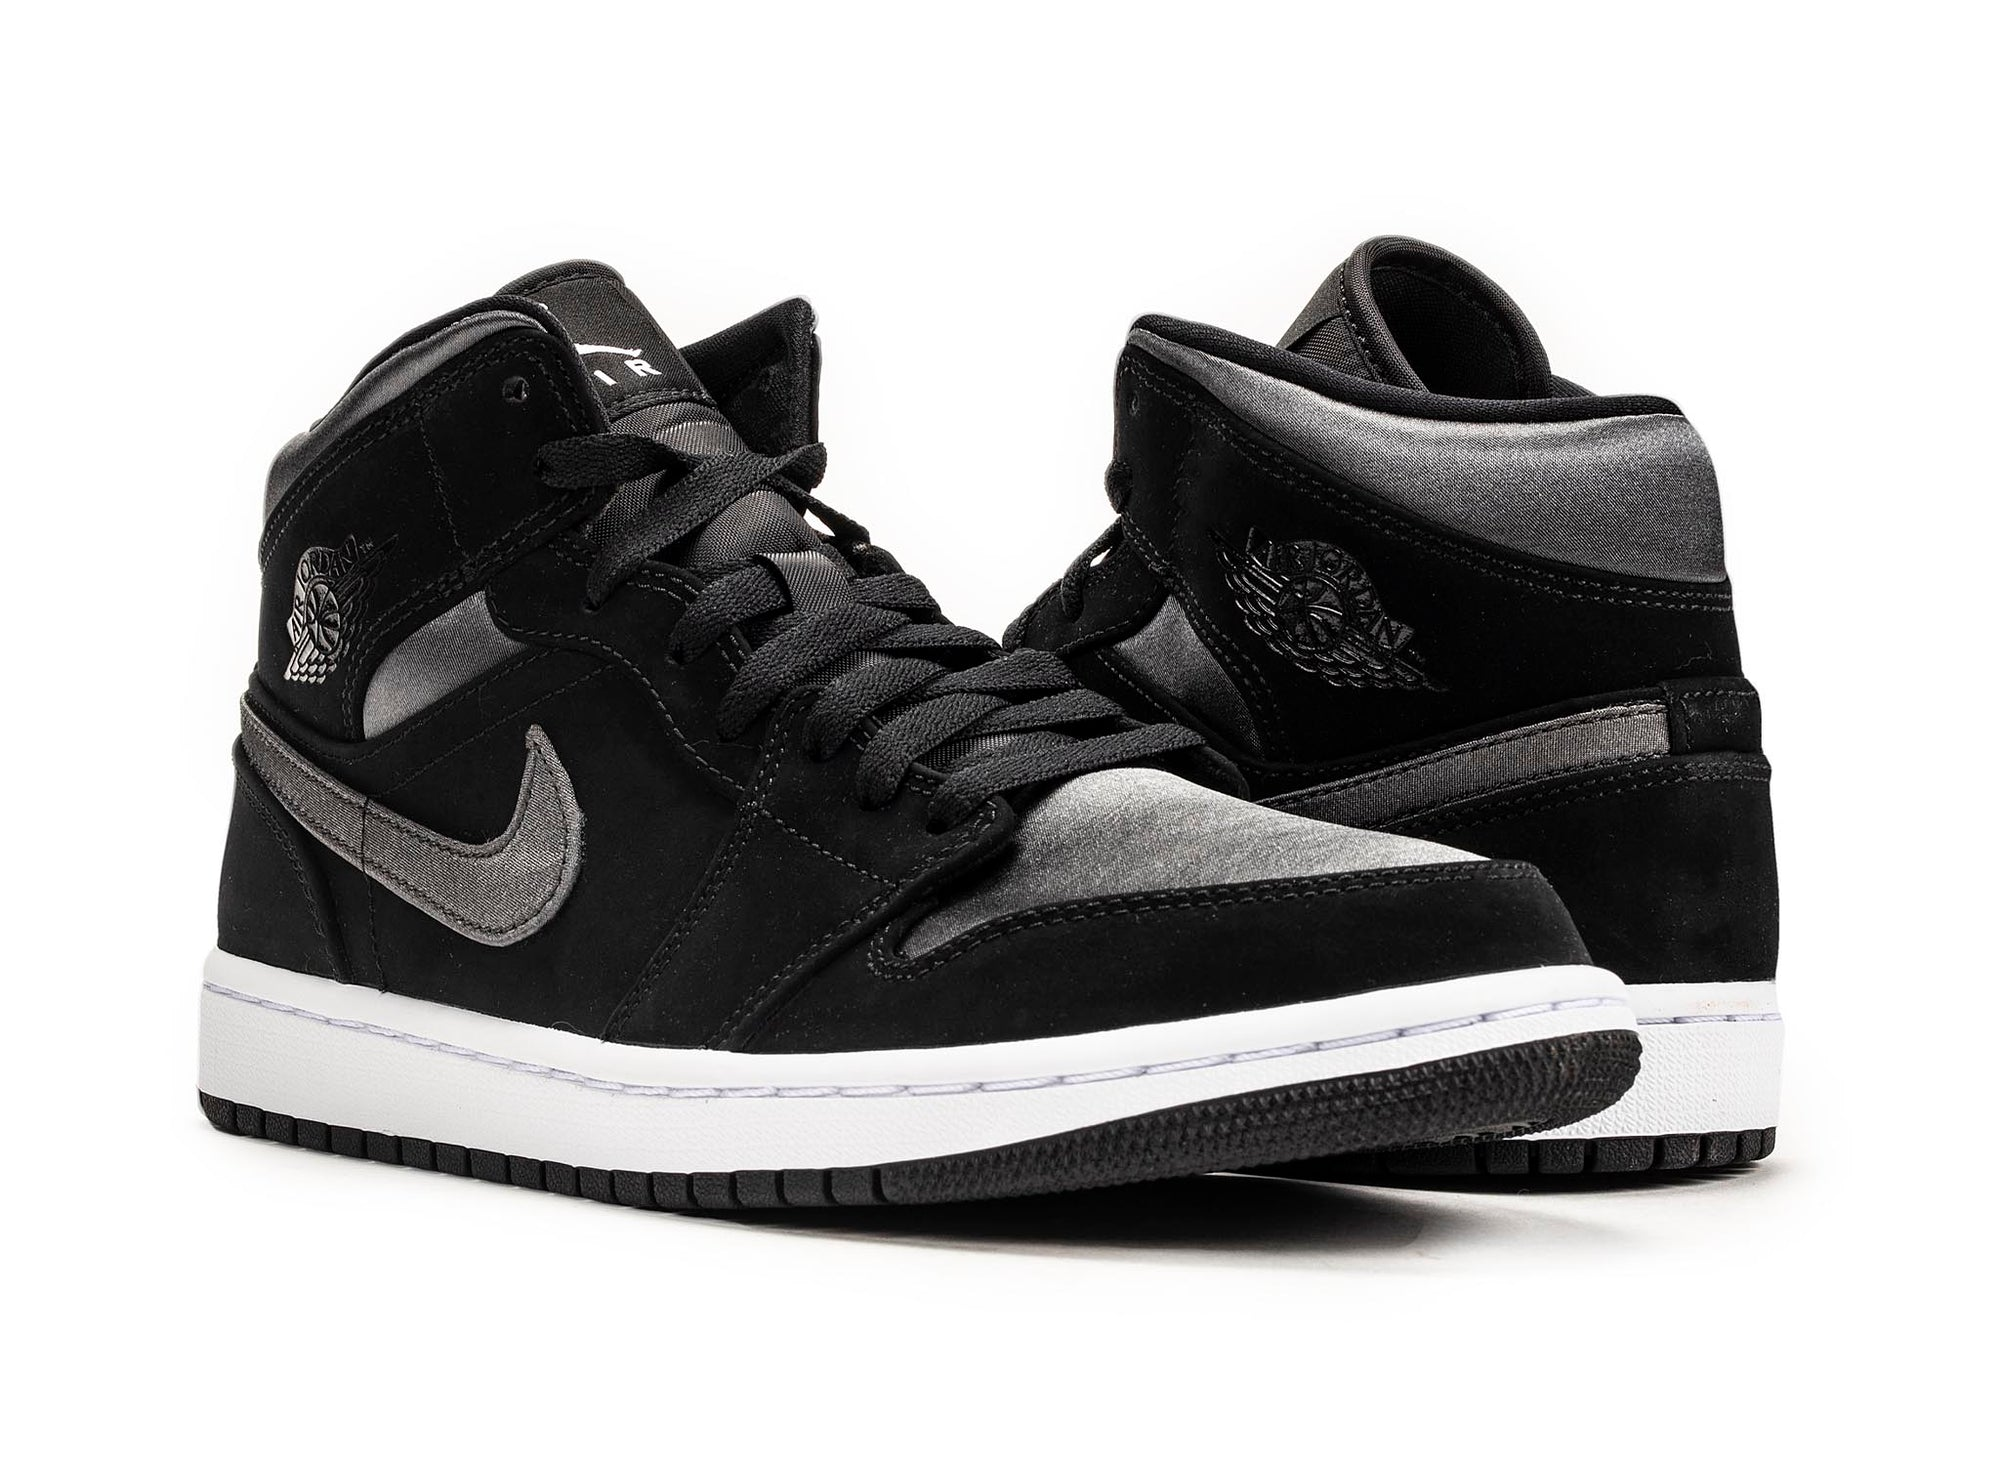 sale retailer 8de32 456db Air Jordan 1 Mid SE 'Anthracite'